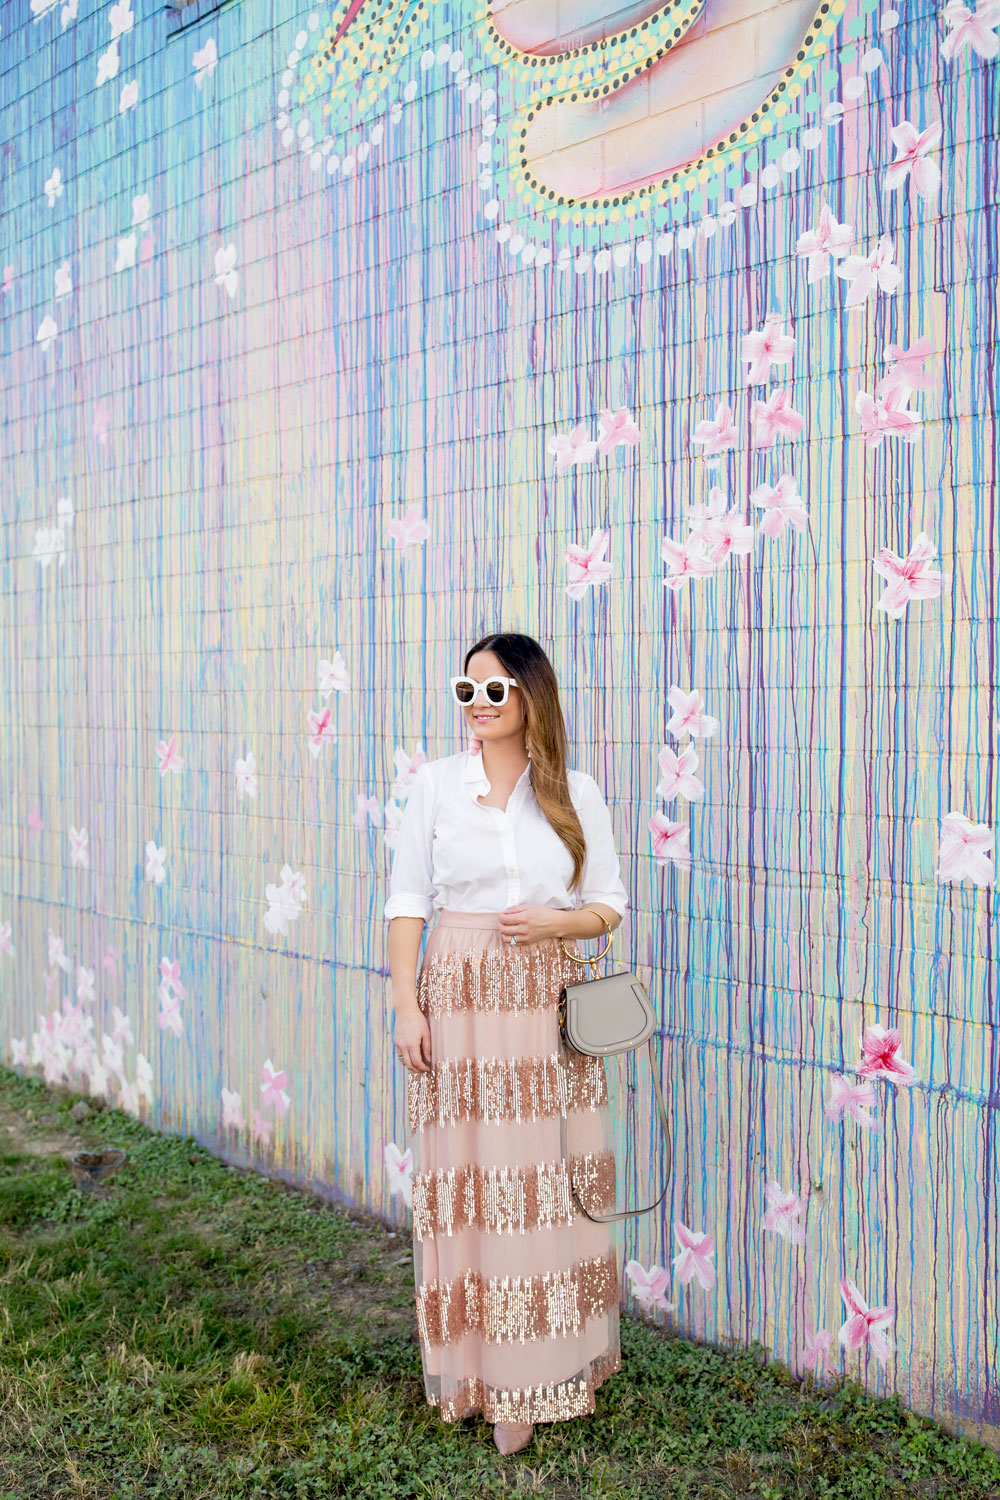 Colorful Floral Drip Paint Mural Houston